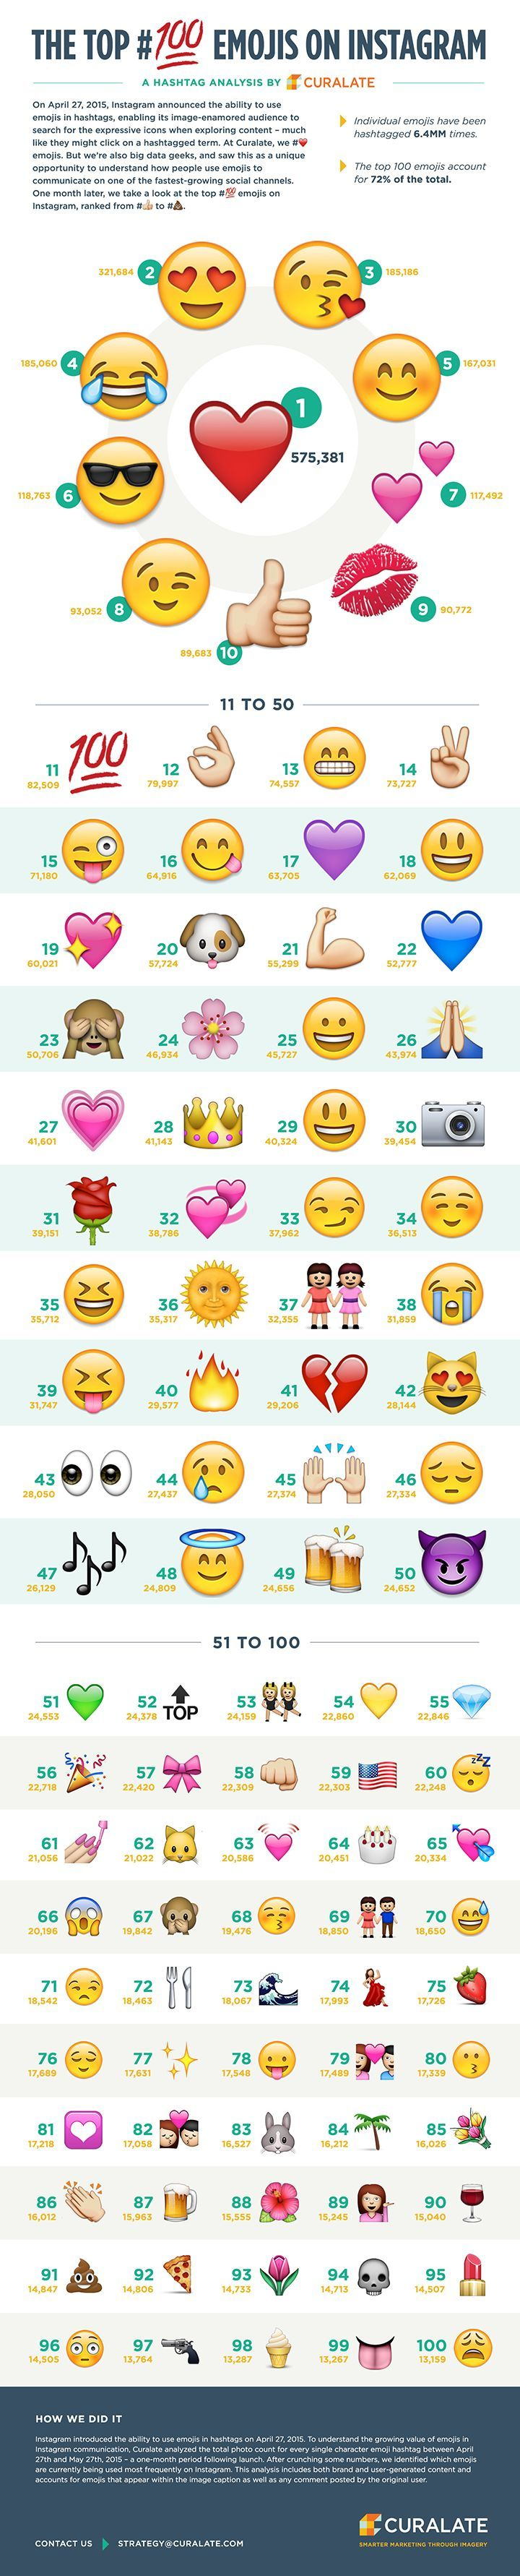 Top 100 Emoji on Instagram. The #1 fave is a single red heart. | Social Media Marketing Tips